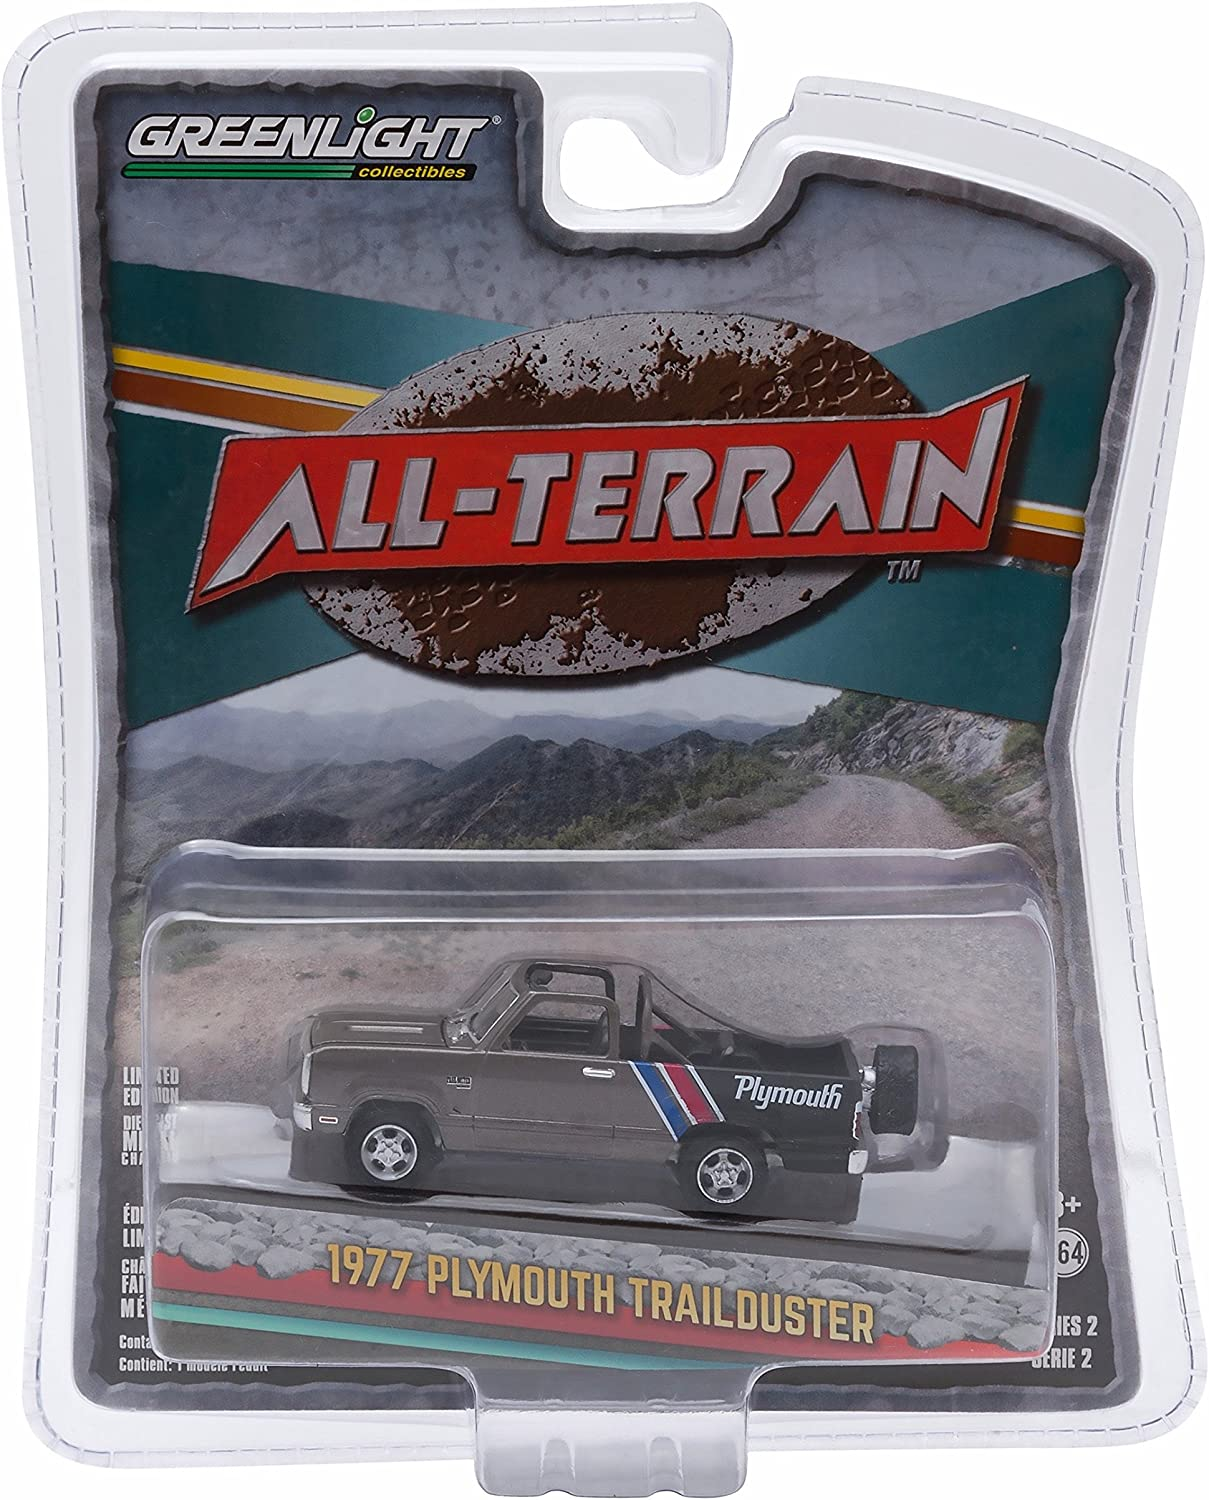 1977 PLYMOUTH TRAILDUSTER  AllTerrain Series 2  2015 Greenlight Collectibles 1 64 Scale Limited Edition DieCast Vehicle